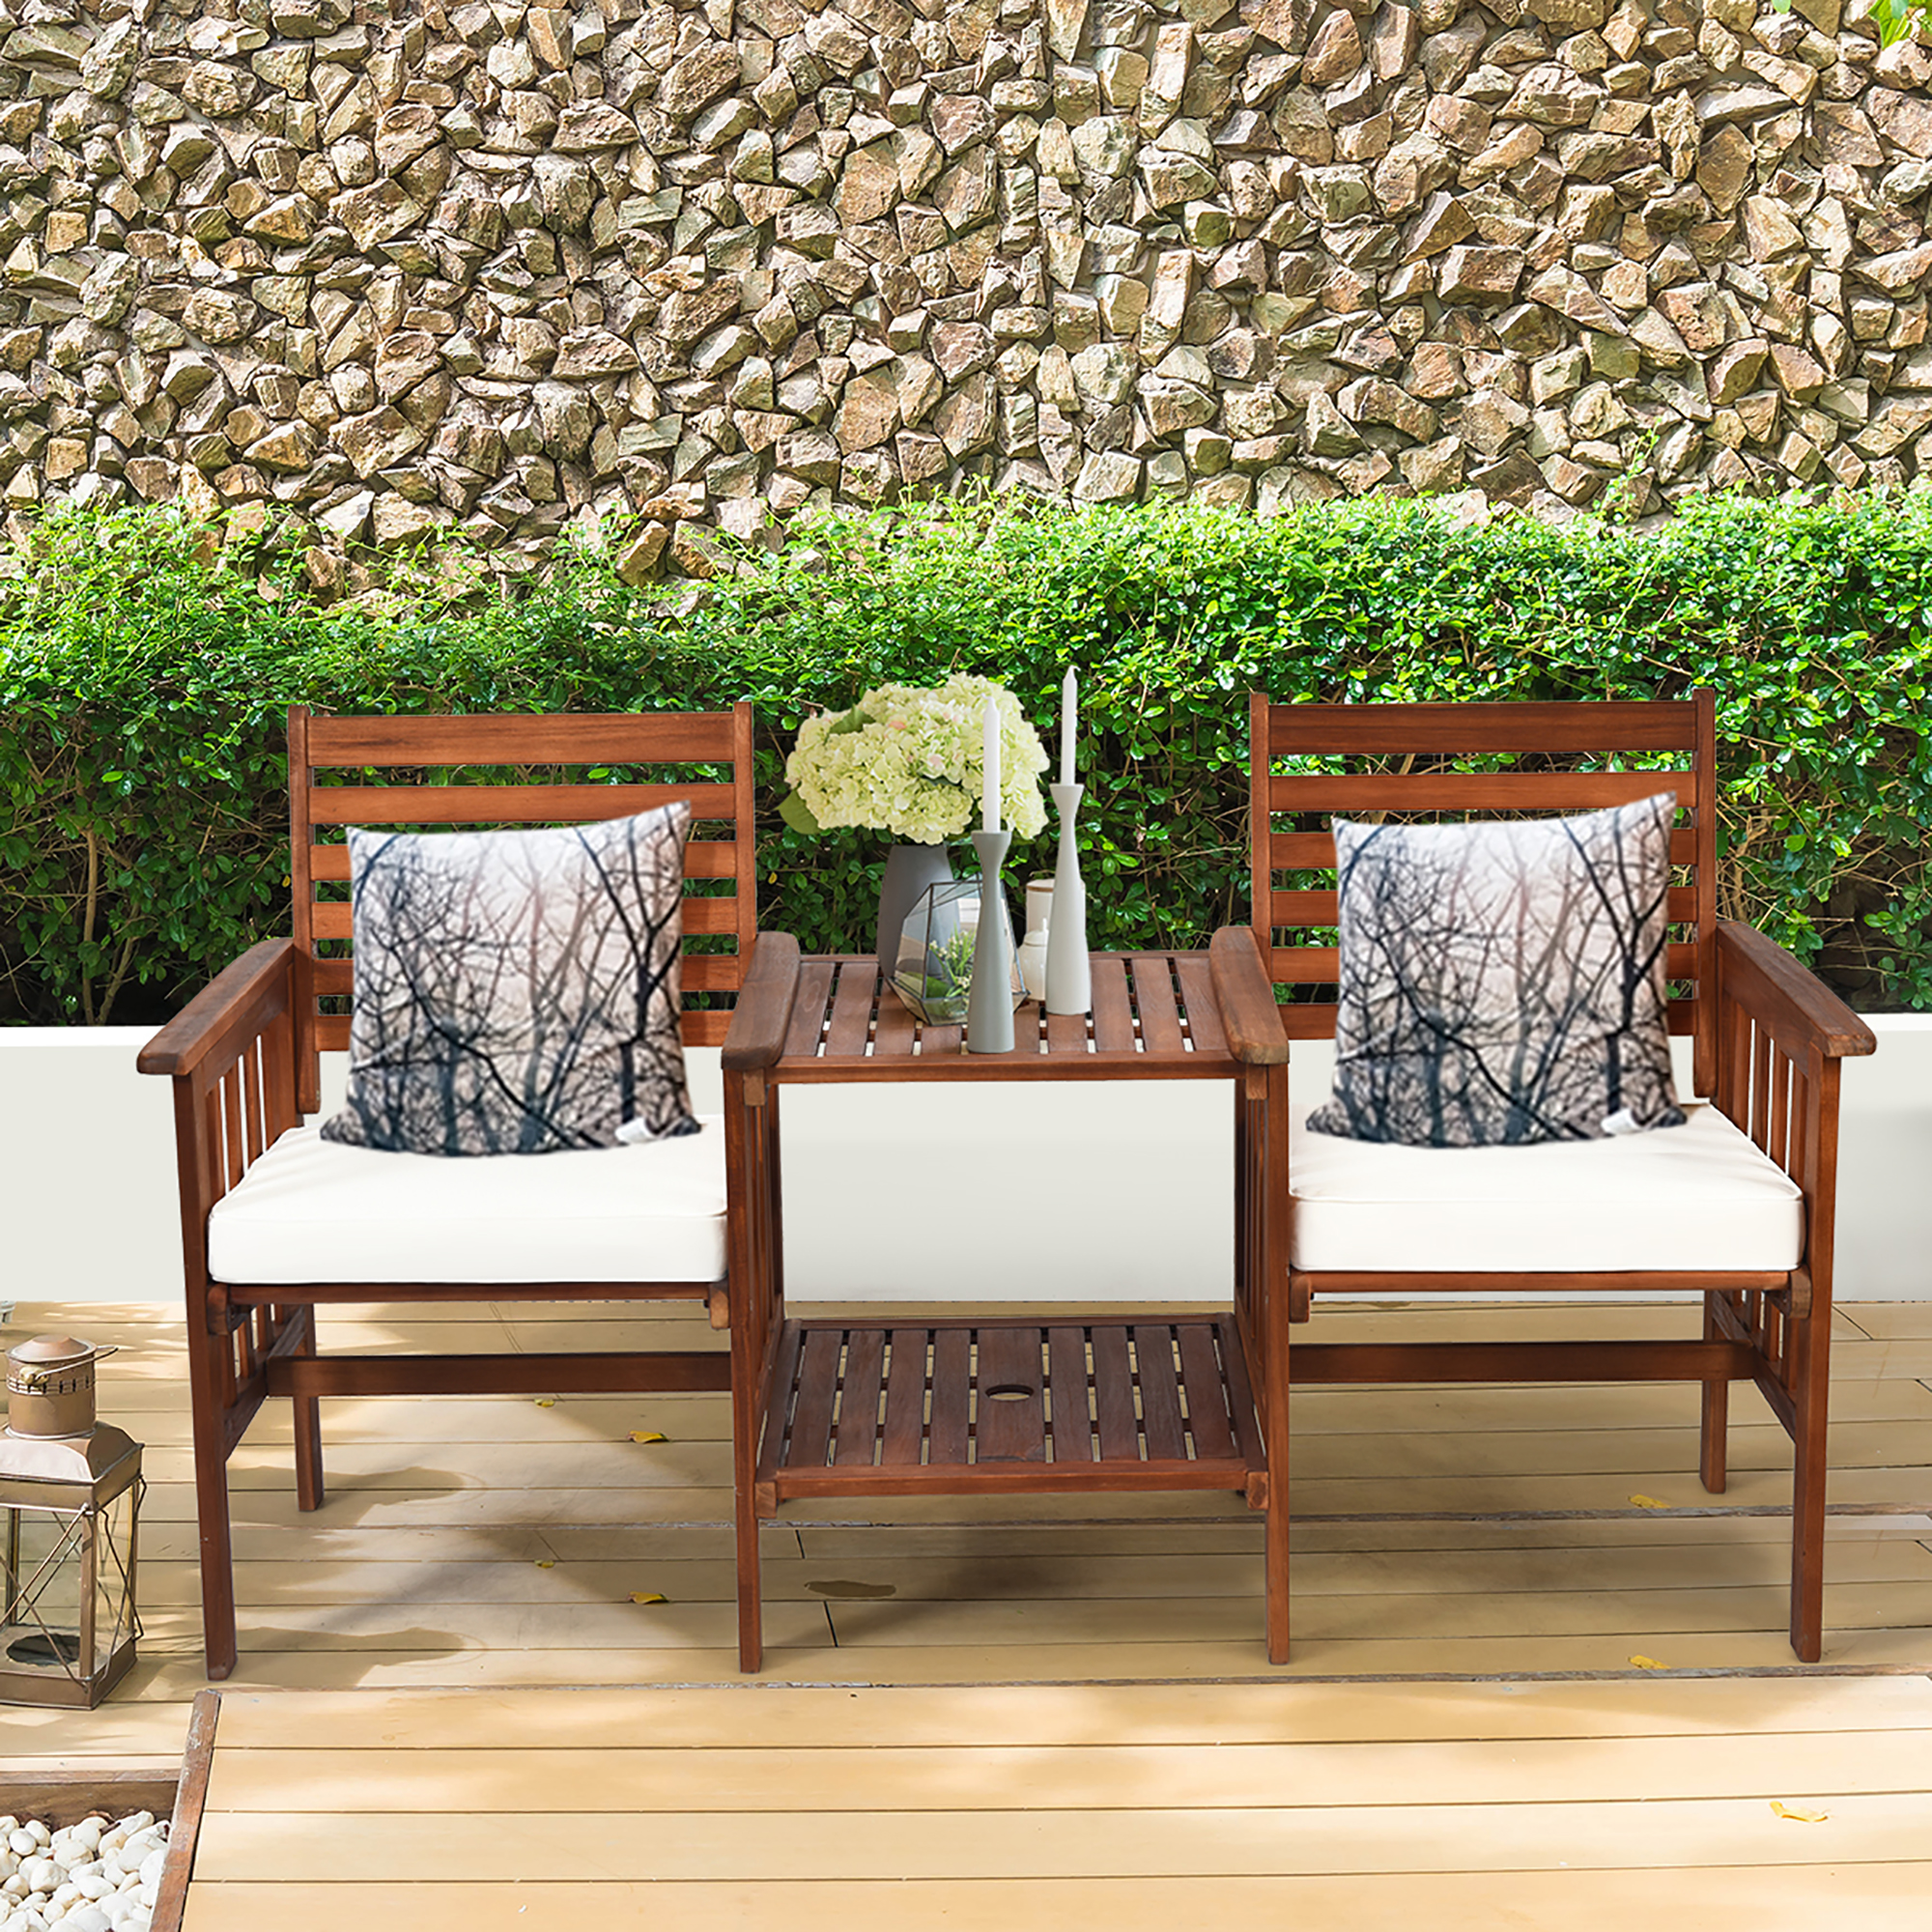 costway costway patio loveseat conversation set acacia wood chair coffee table cush from tanga com accuweather